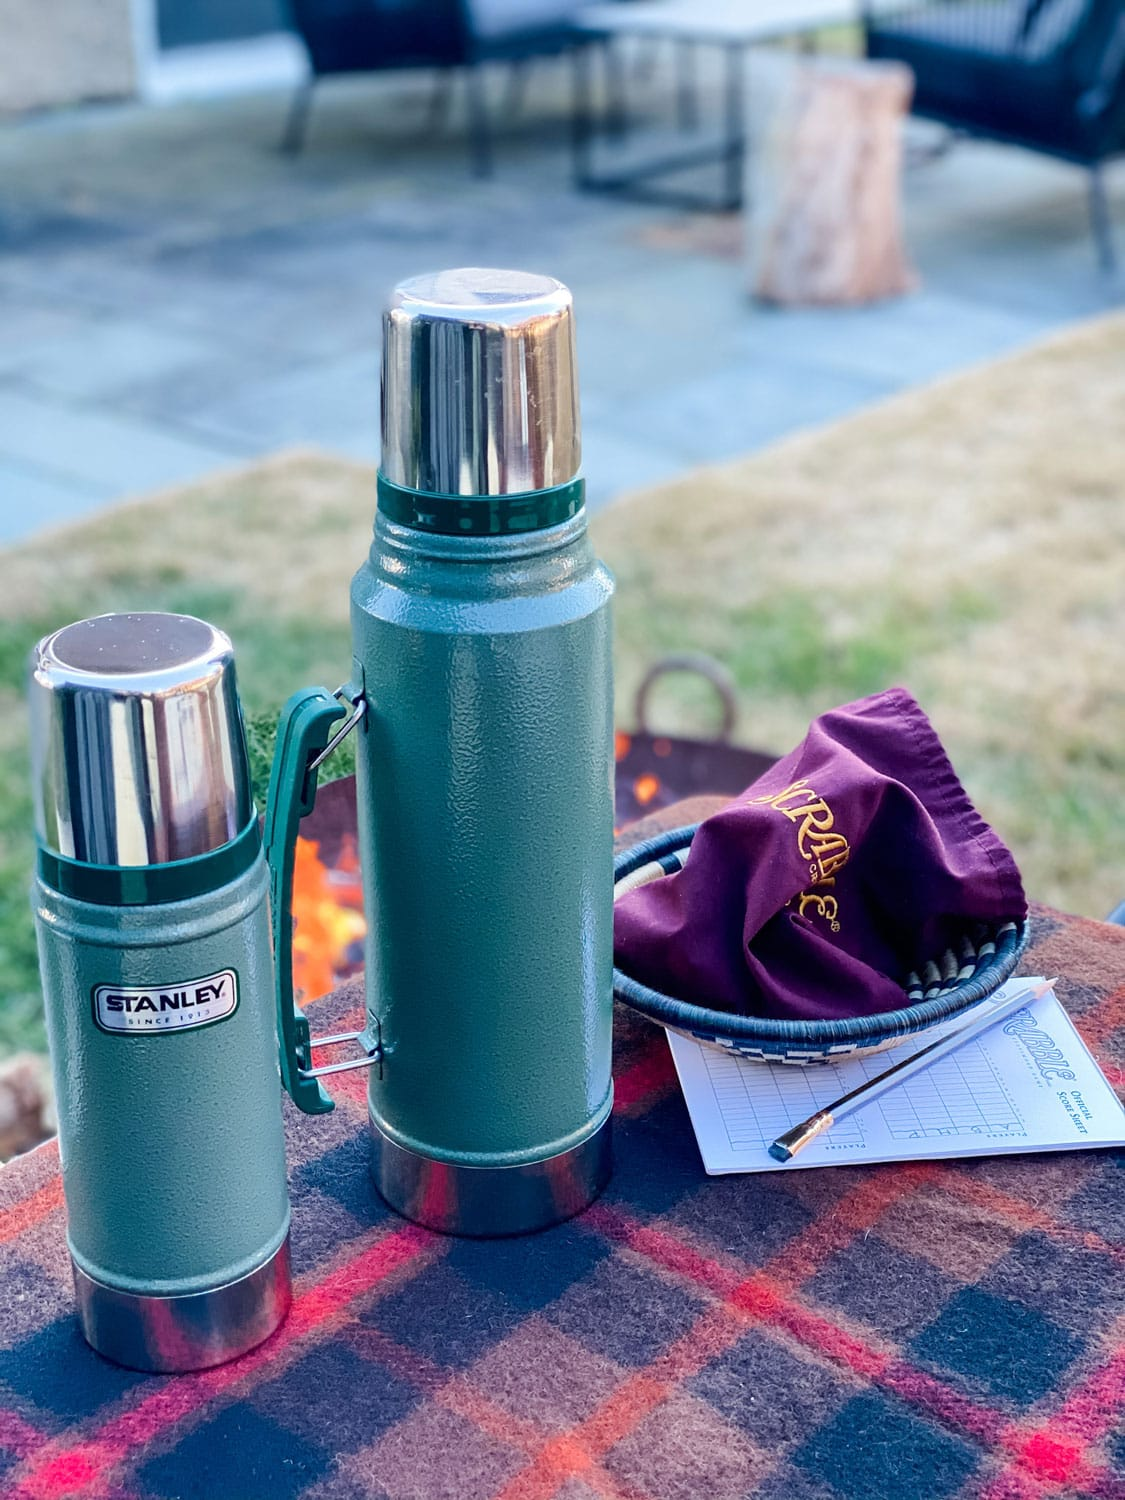 Stanley Thermos and scrabble piece bag on Pendleton blanket